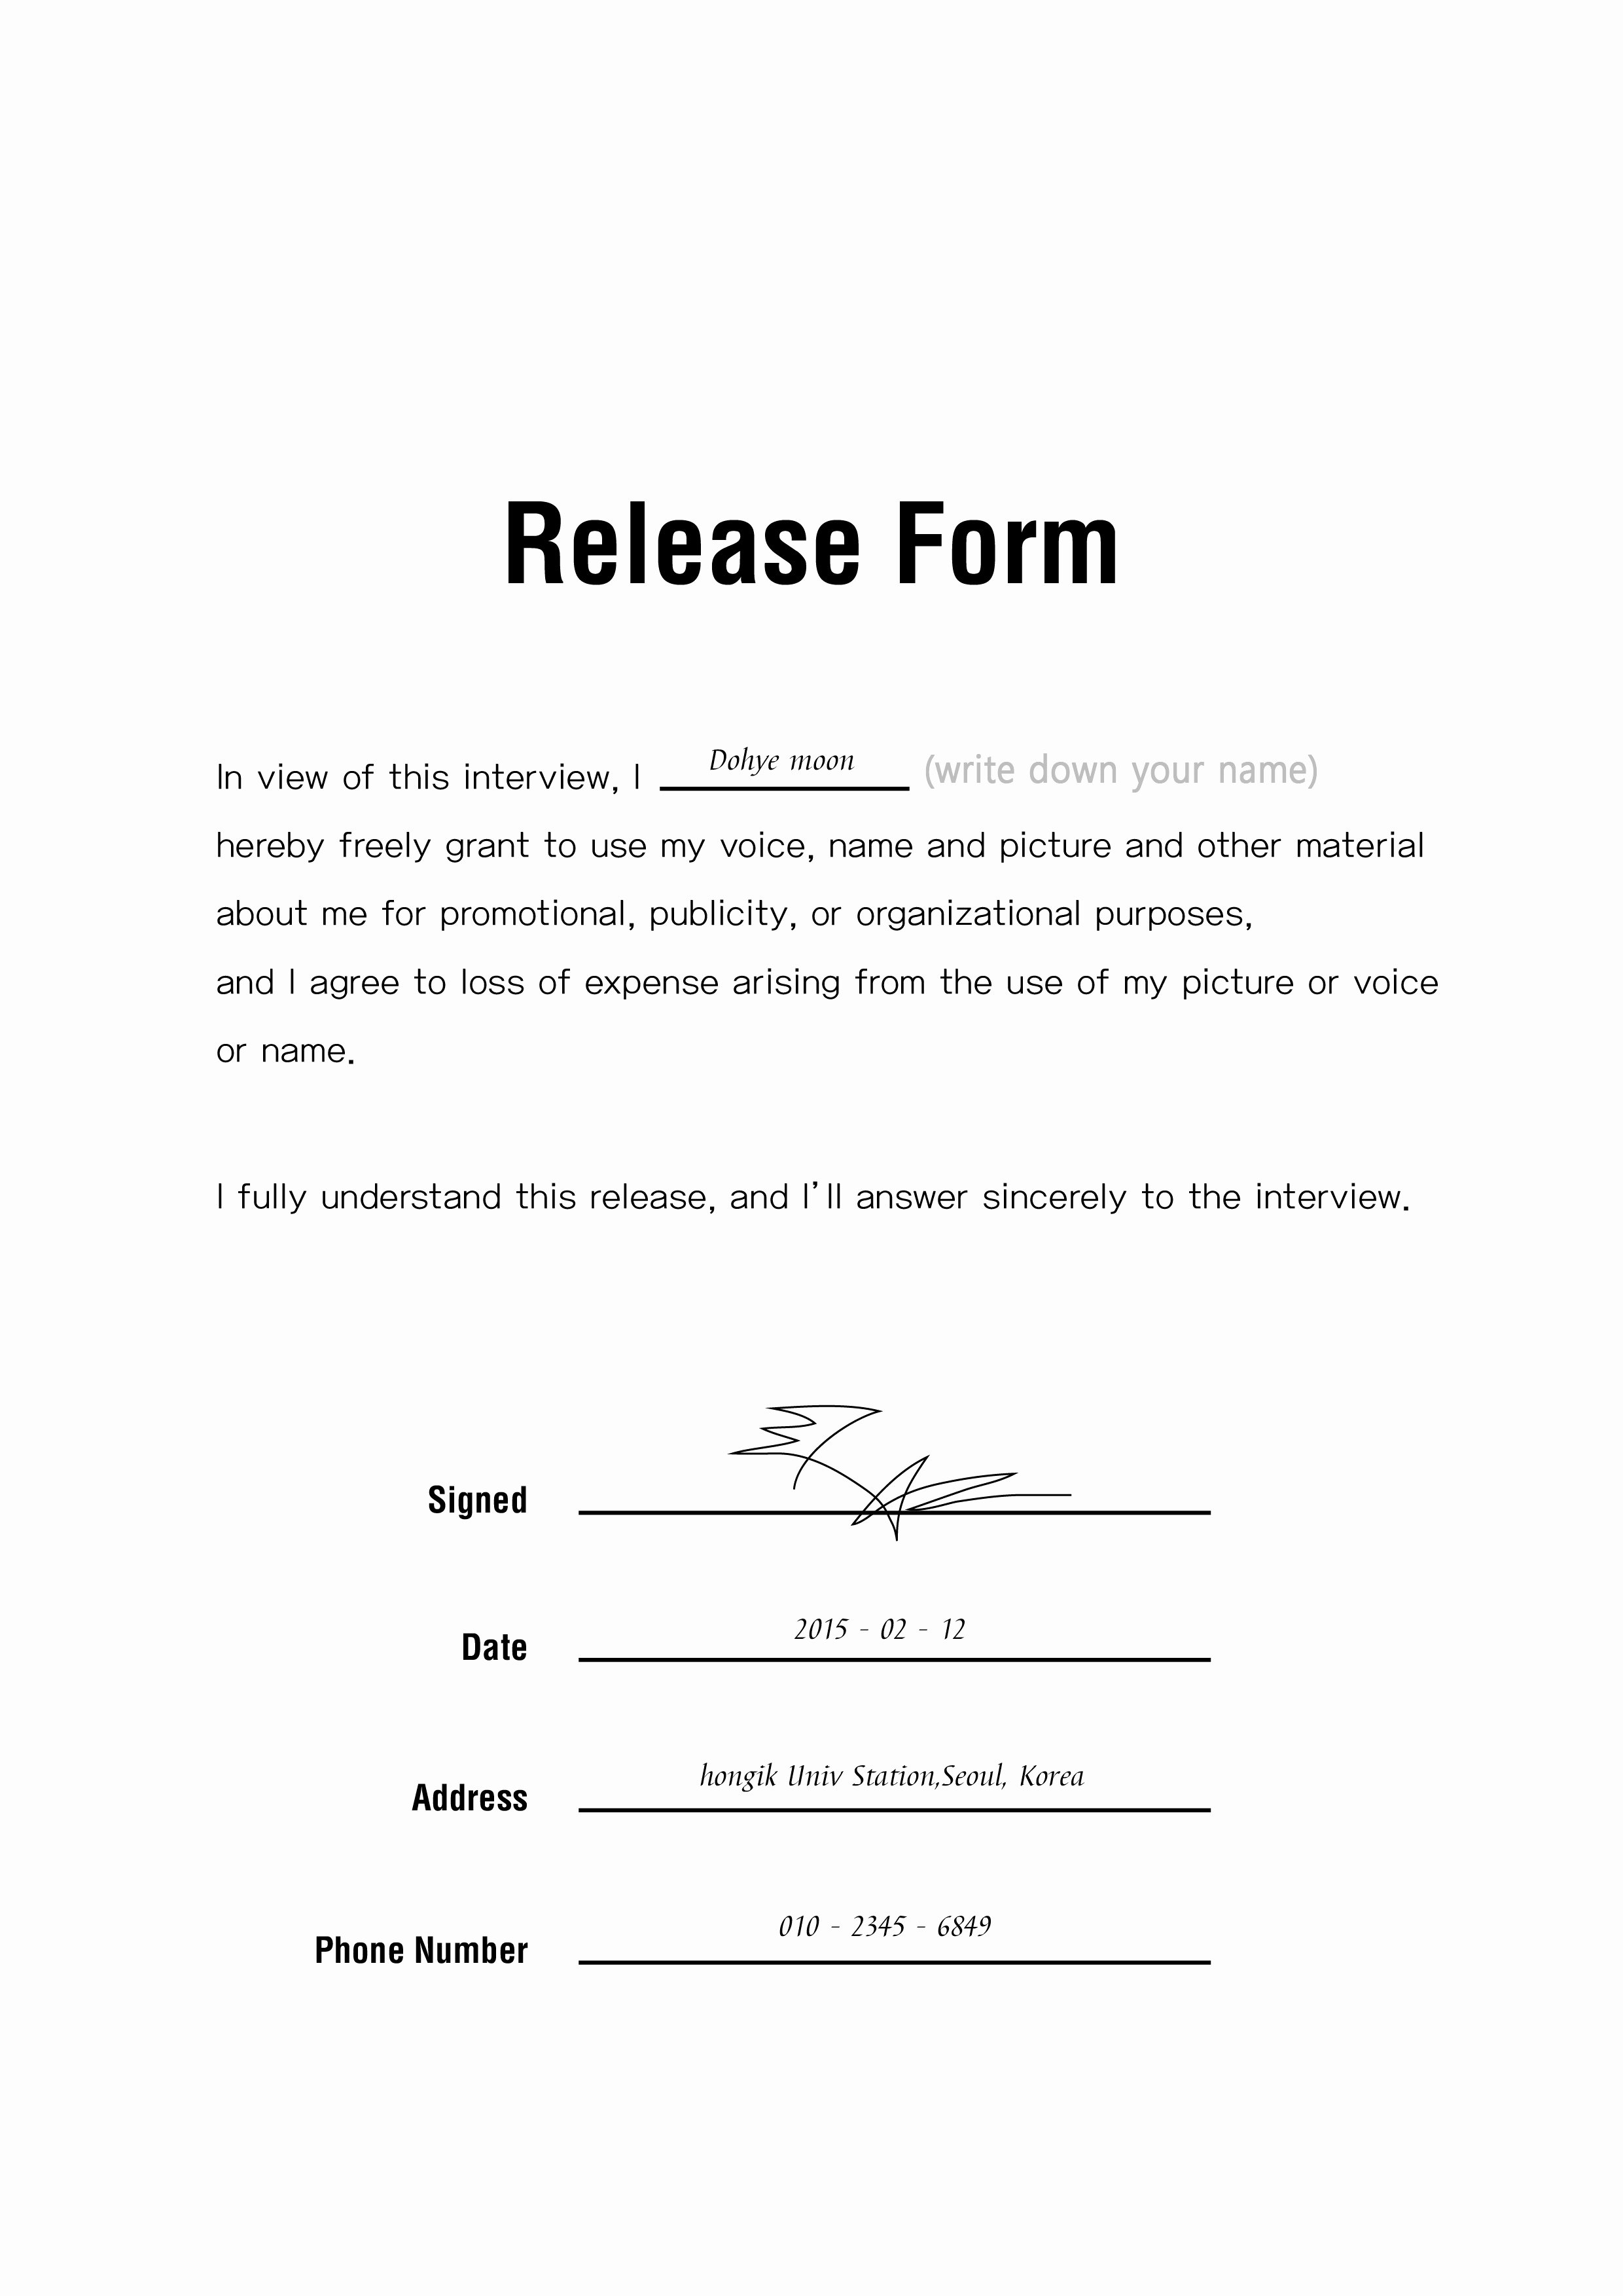 Photo Release form Template Free Awesome Release form